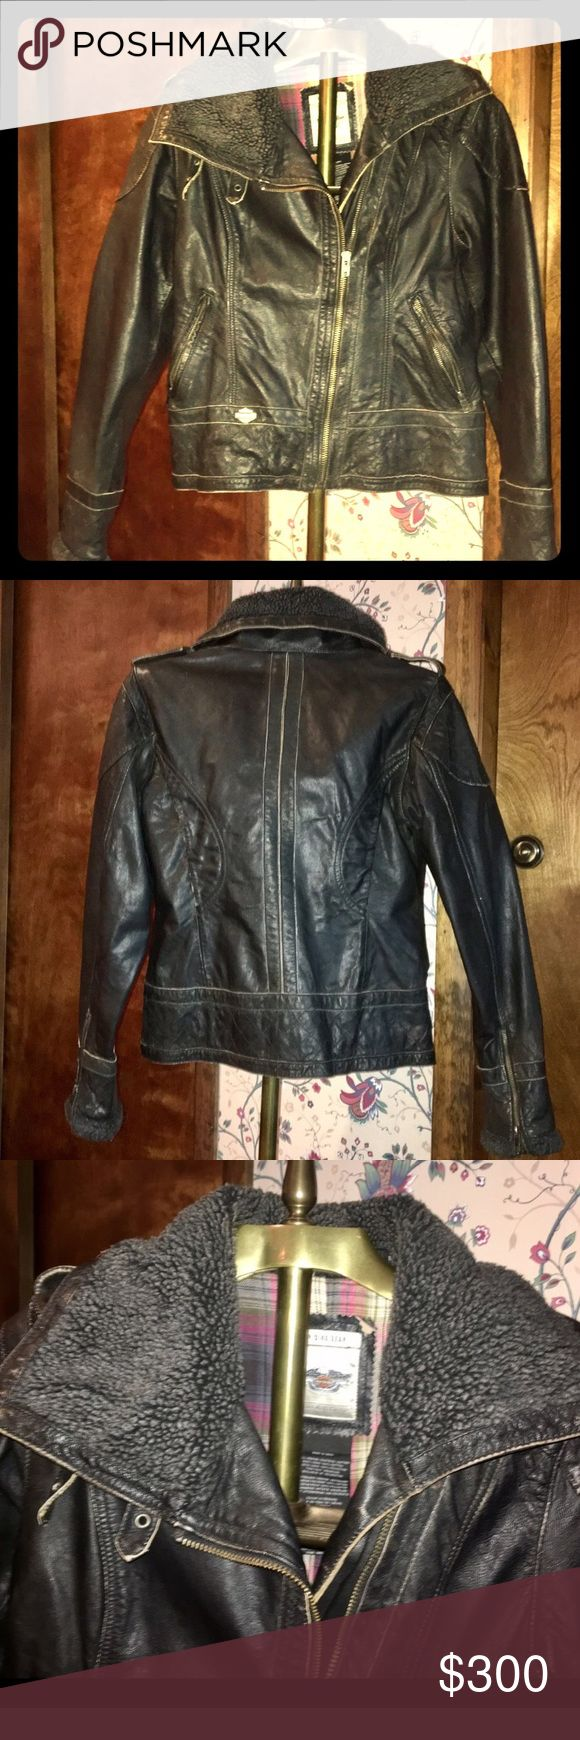 Awesome Harley Davidson distressed leather jacket! Gorgeous NWOT distressed leather Harley Davidson jacket!  Lined with plaid flannel, flattering fit, fleece around neck...zips up high to really protect from wind!  Cool 😎 angled zipper, zip up wrists...never worn! Received as 🎁...just not my style 😫women's small.  Metal Harley Davidson logo on front left bottom of coat 😍 Harley-Davidson Jackets & Coats